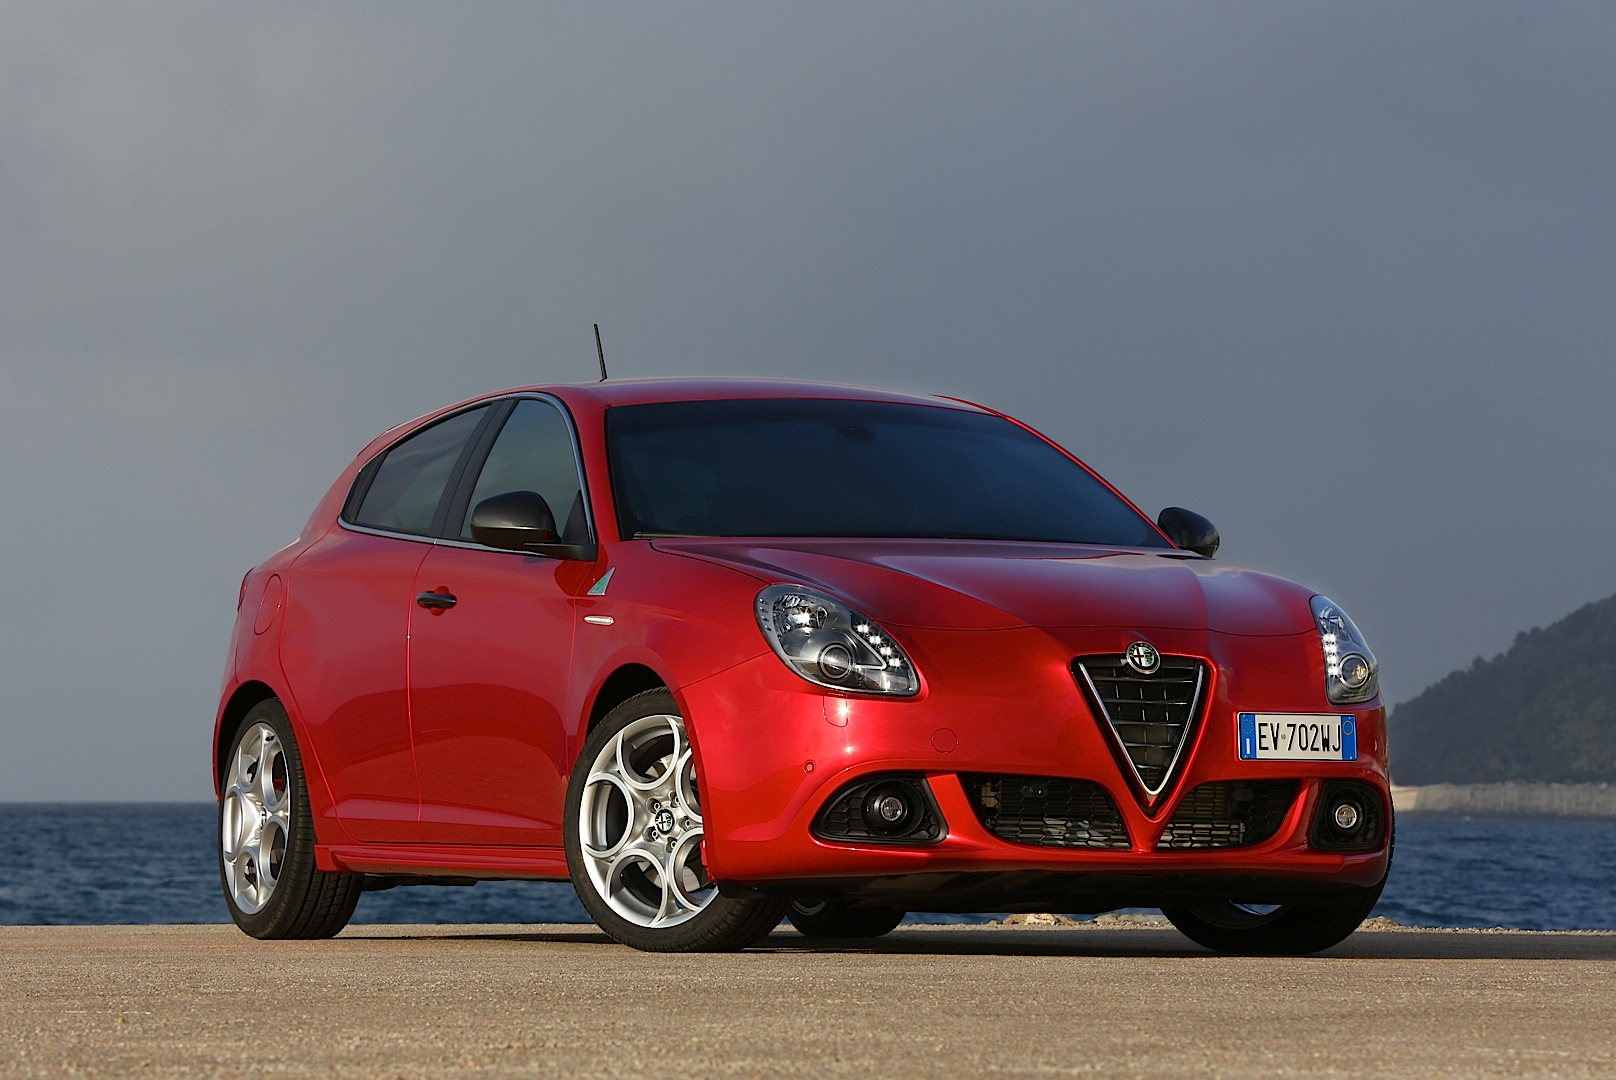 alfa romeo to rebadge mito and giulietta qv as veloce. Black Bedroom Furniture Sets. Home Design Ideas